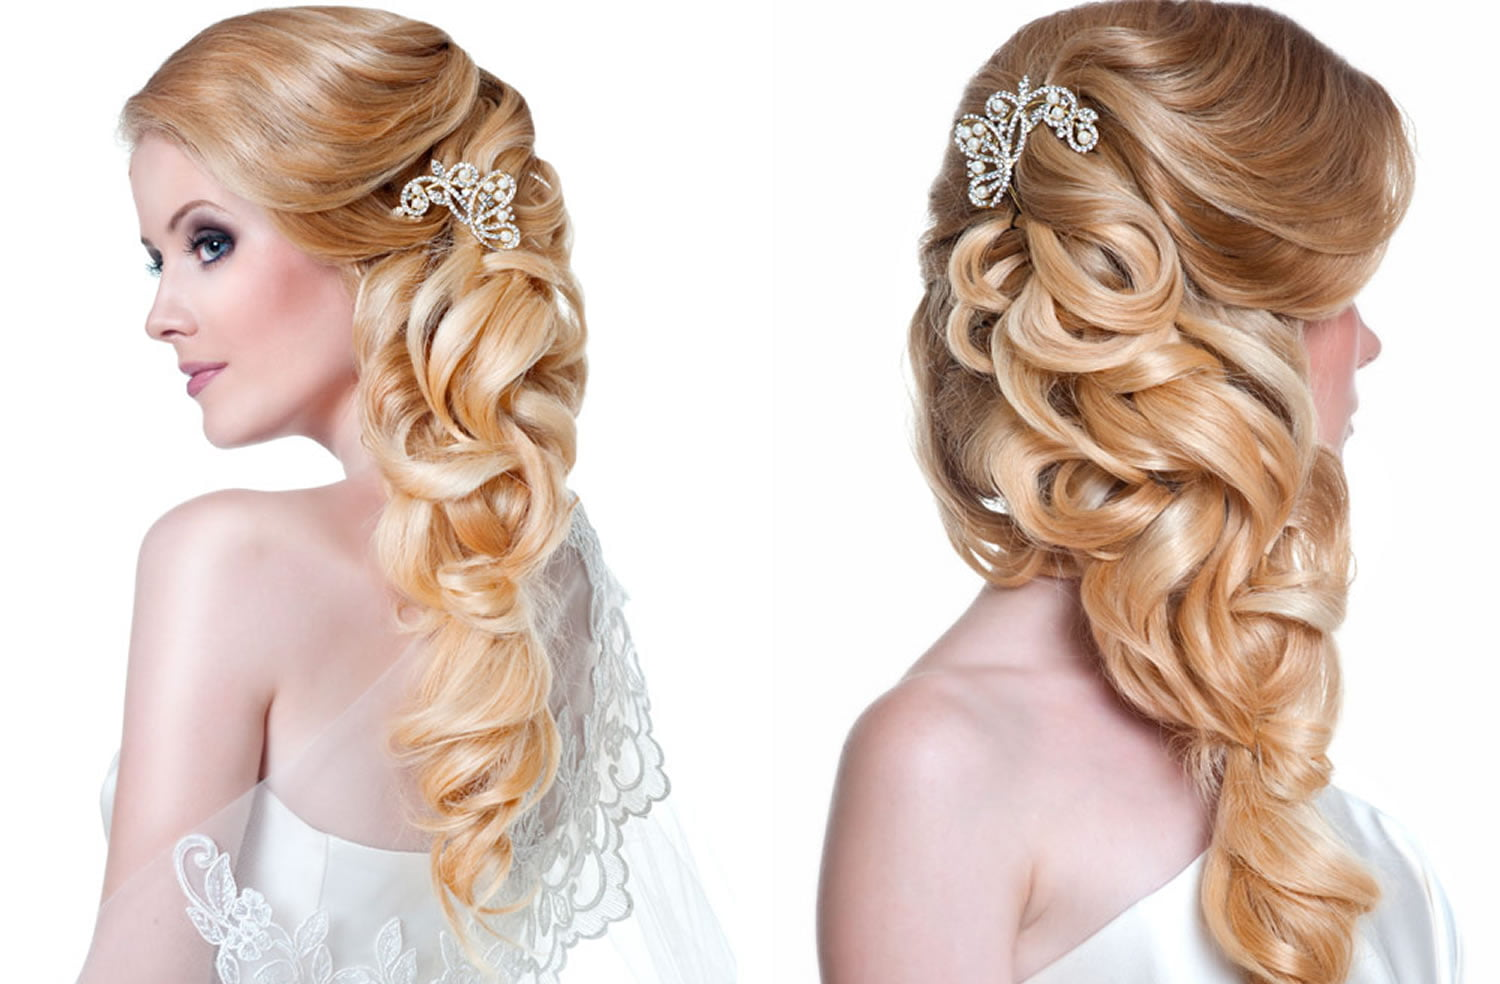 27 Gorgeous Wedding Hairstyles For Long Hair In 2019: Very Stylish Wedding Hairstyles For Long Hair 2018-2019